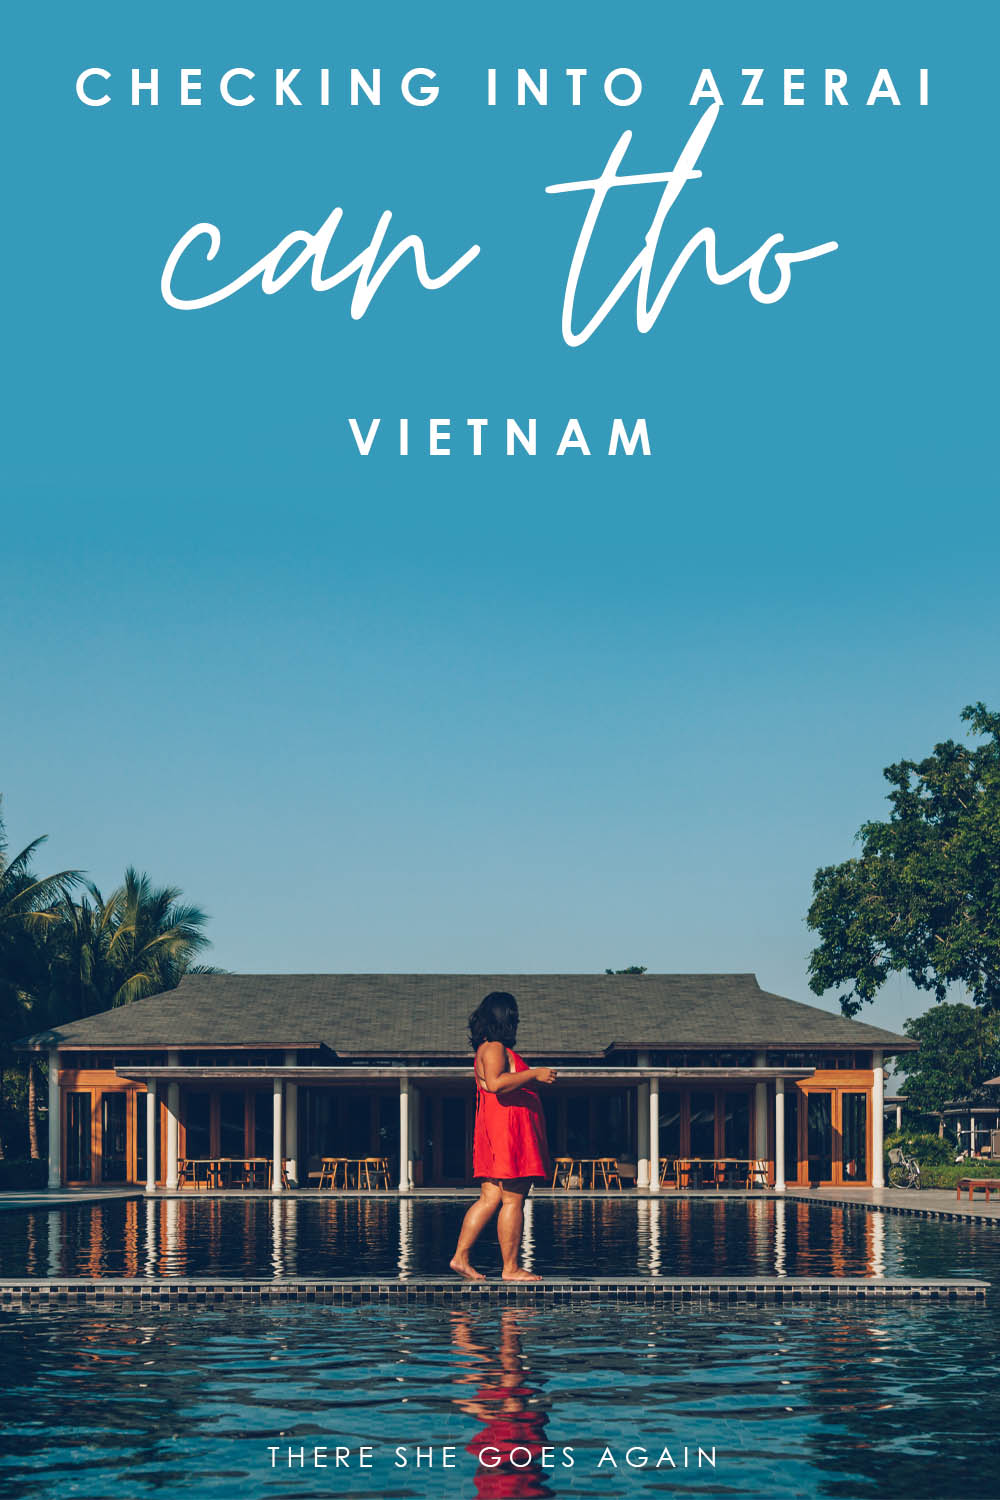 All you need to know for a little escape to Can Tho, Vietnam